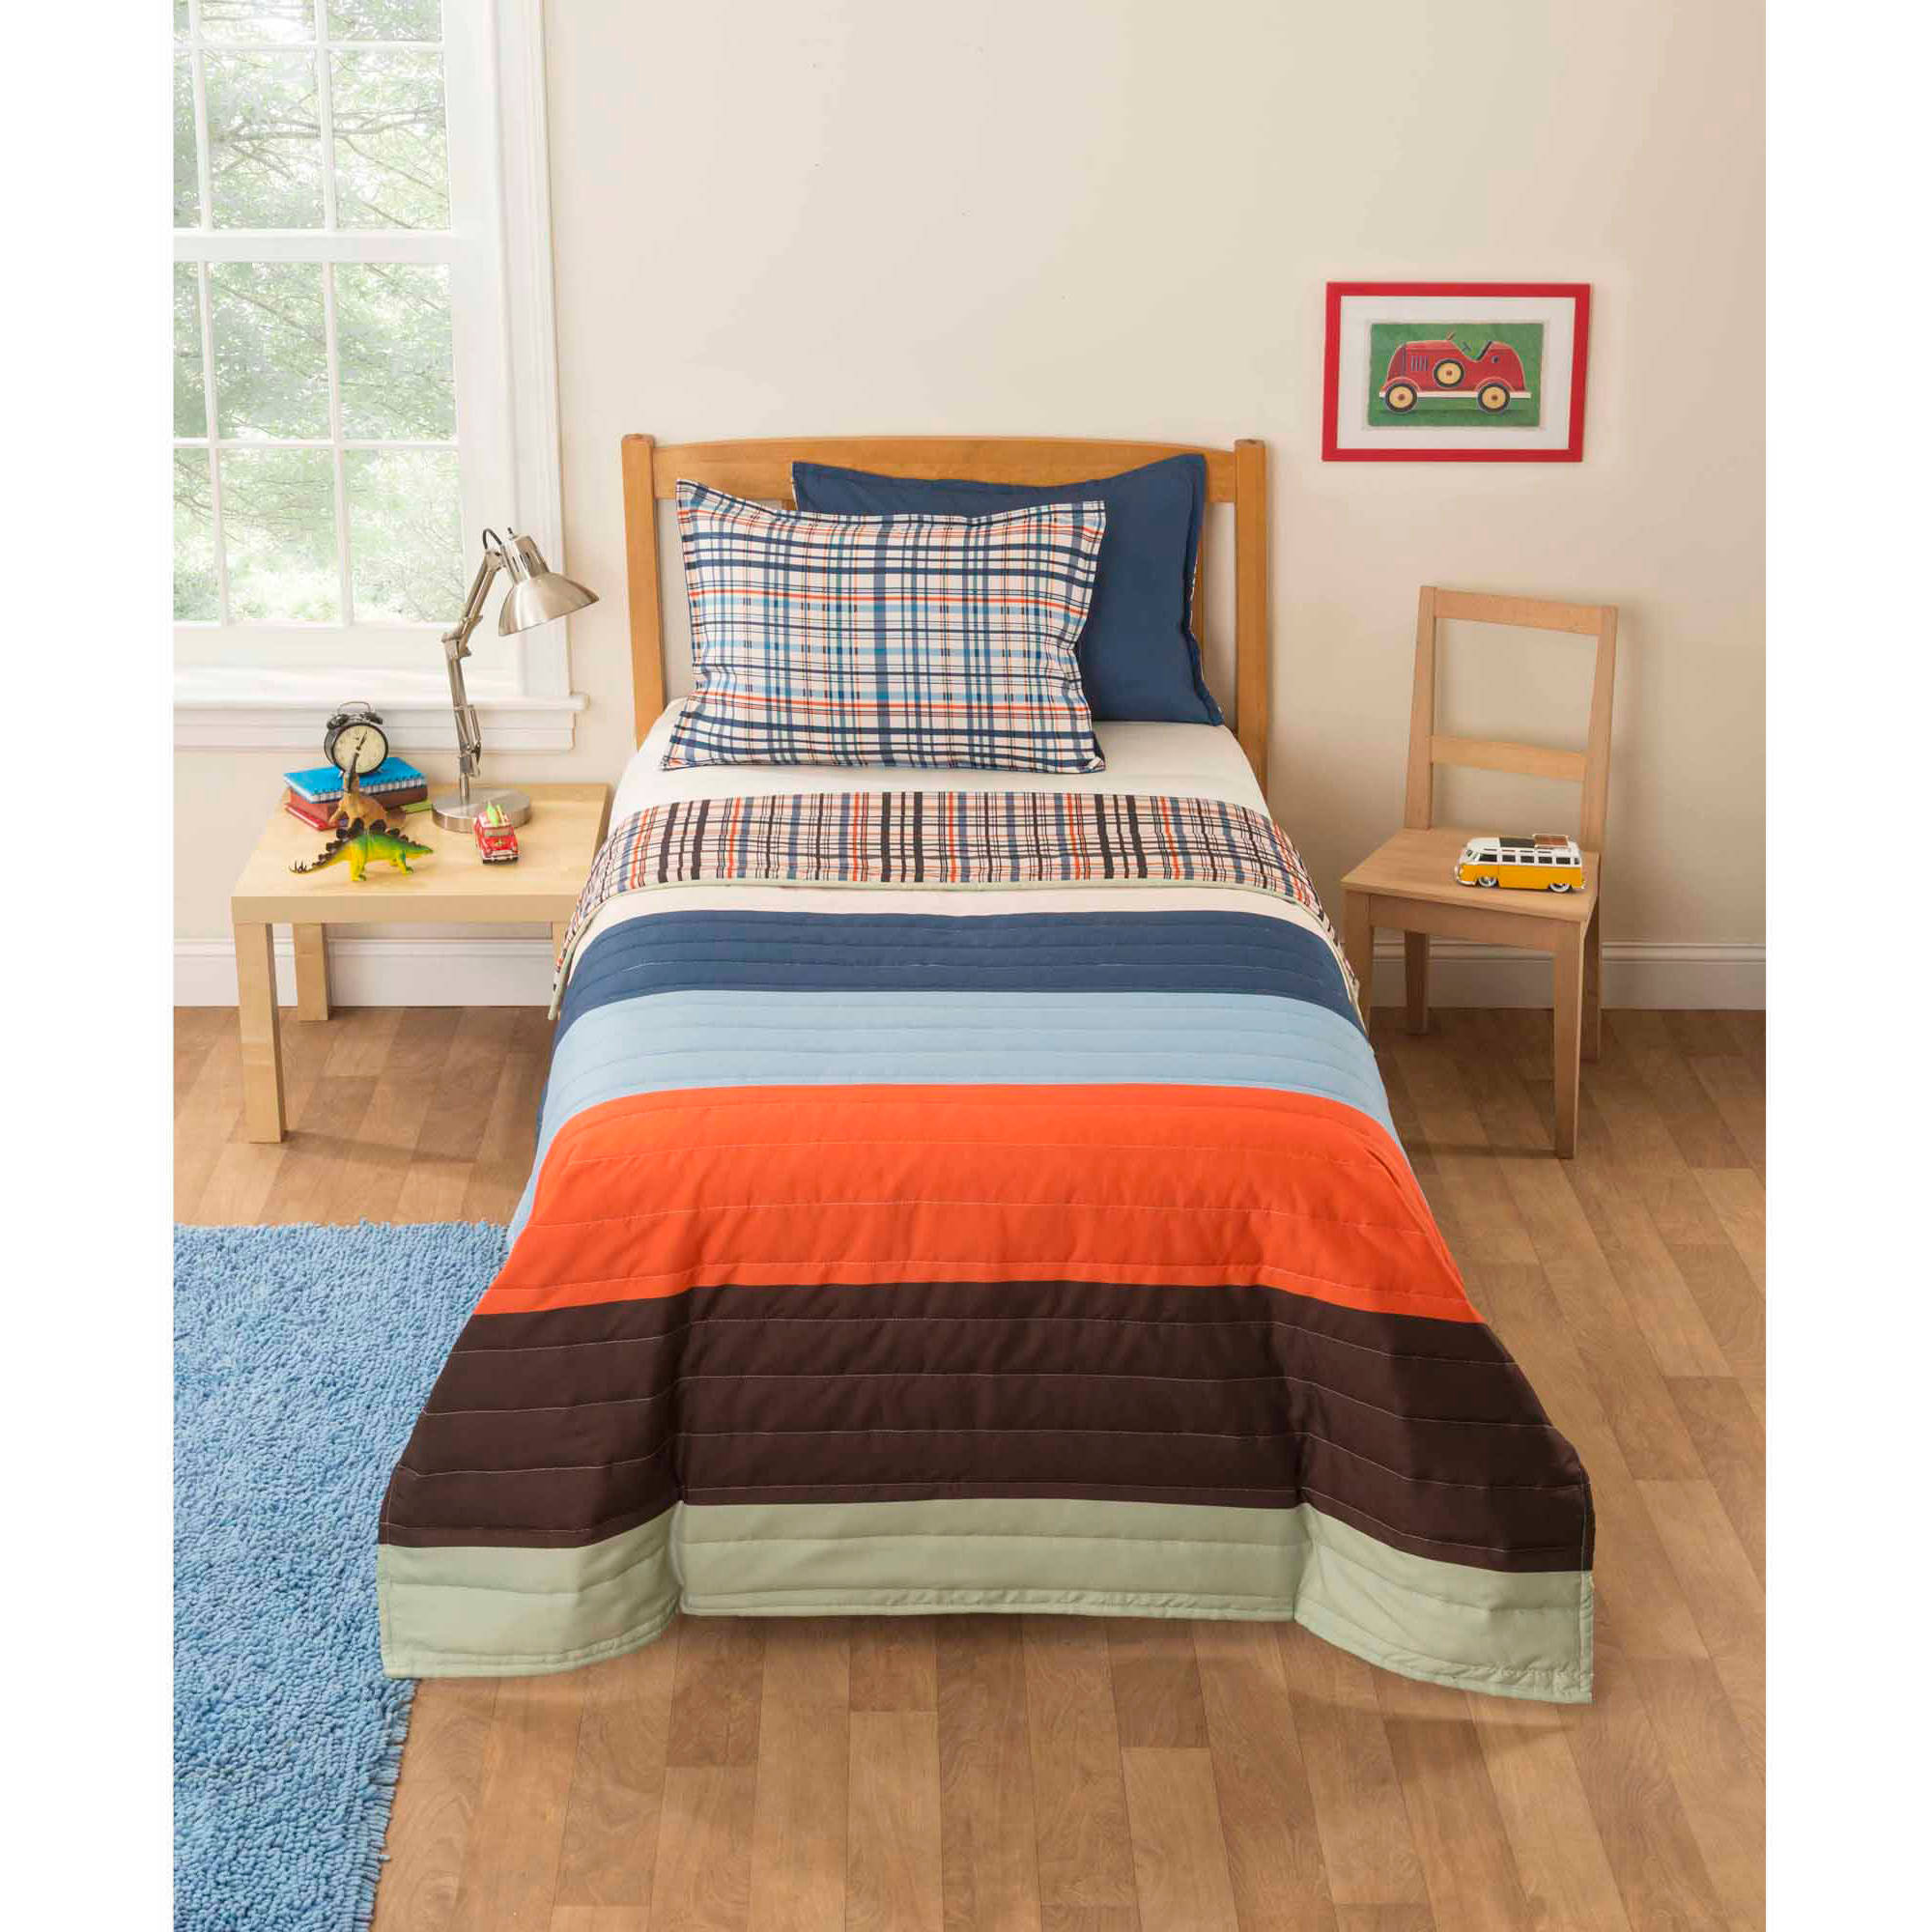 Mainstays Kids Rugby Rall Bedding Comforter Set